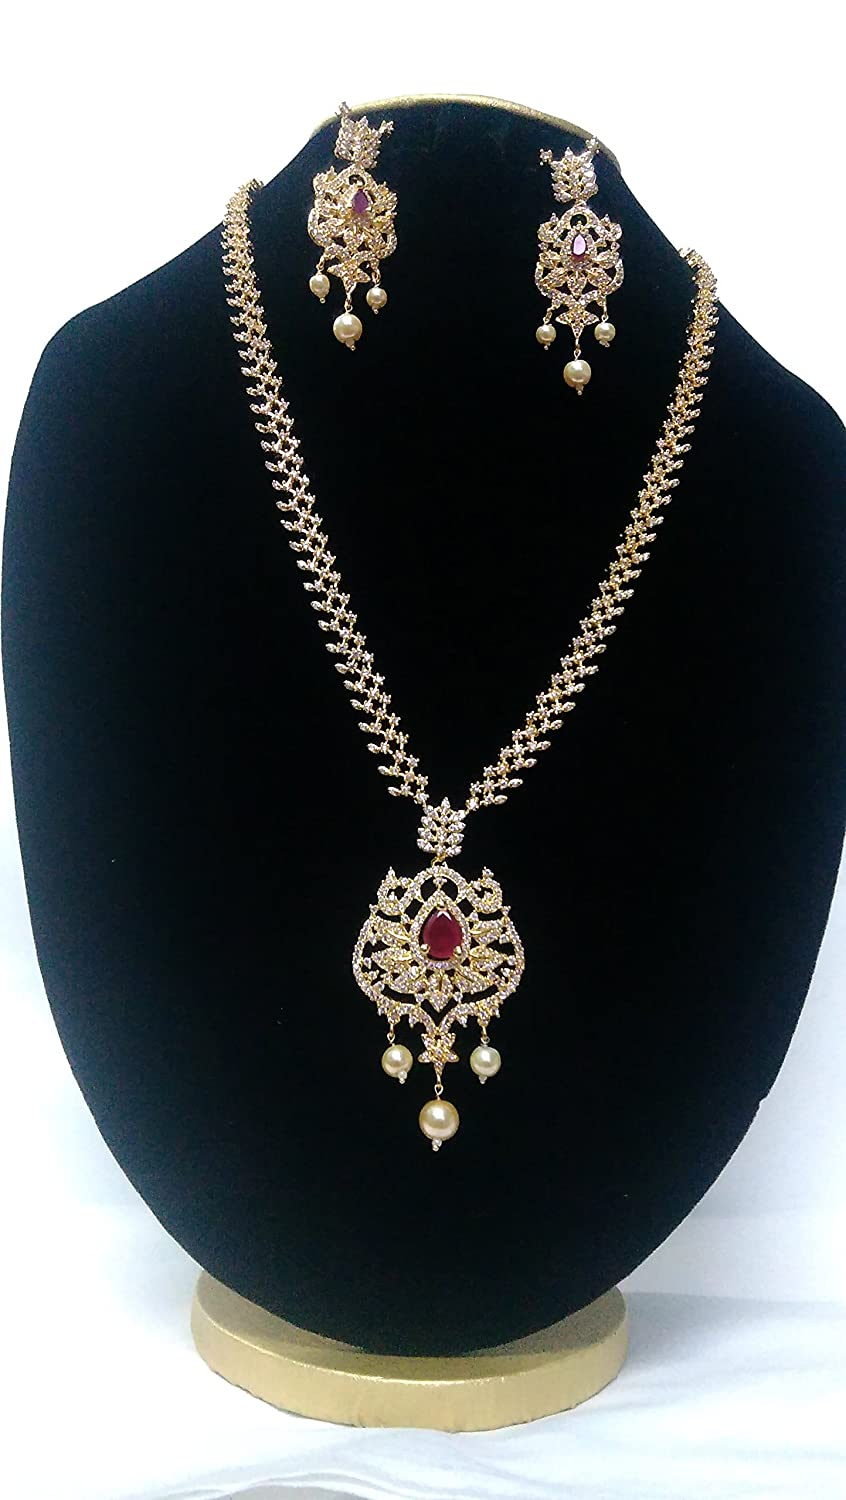 Buy Hemsiru Fashions Gold Plated Cz Crystal Jewellery Set For Women At Amazon In